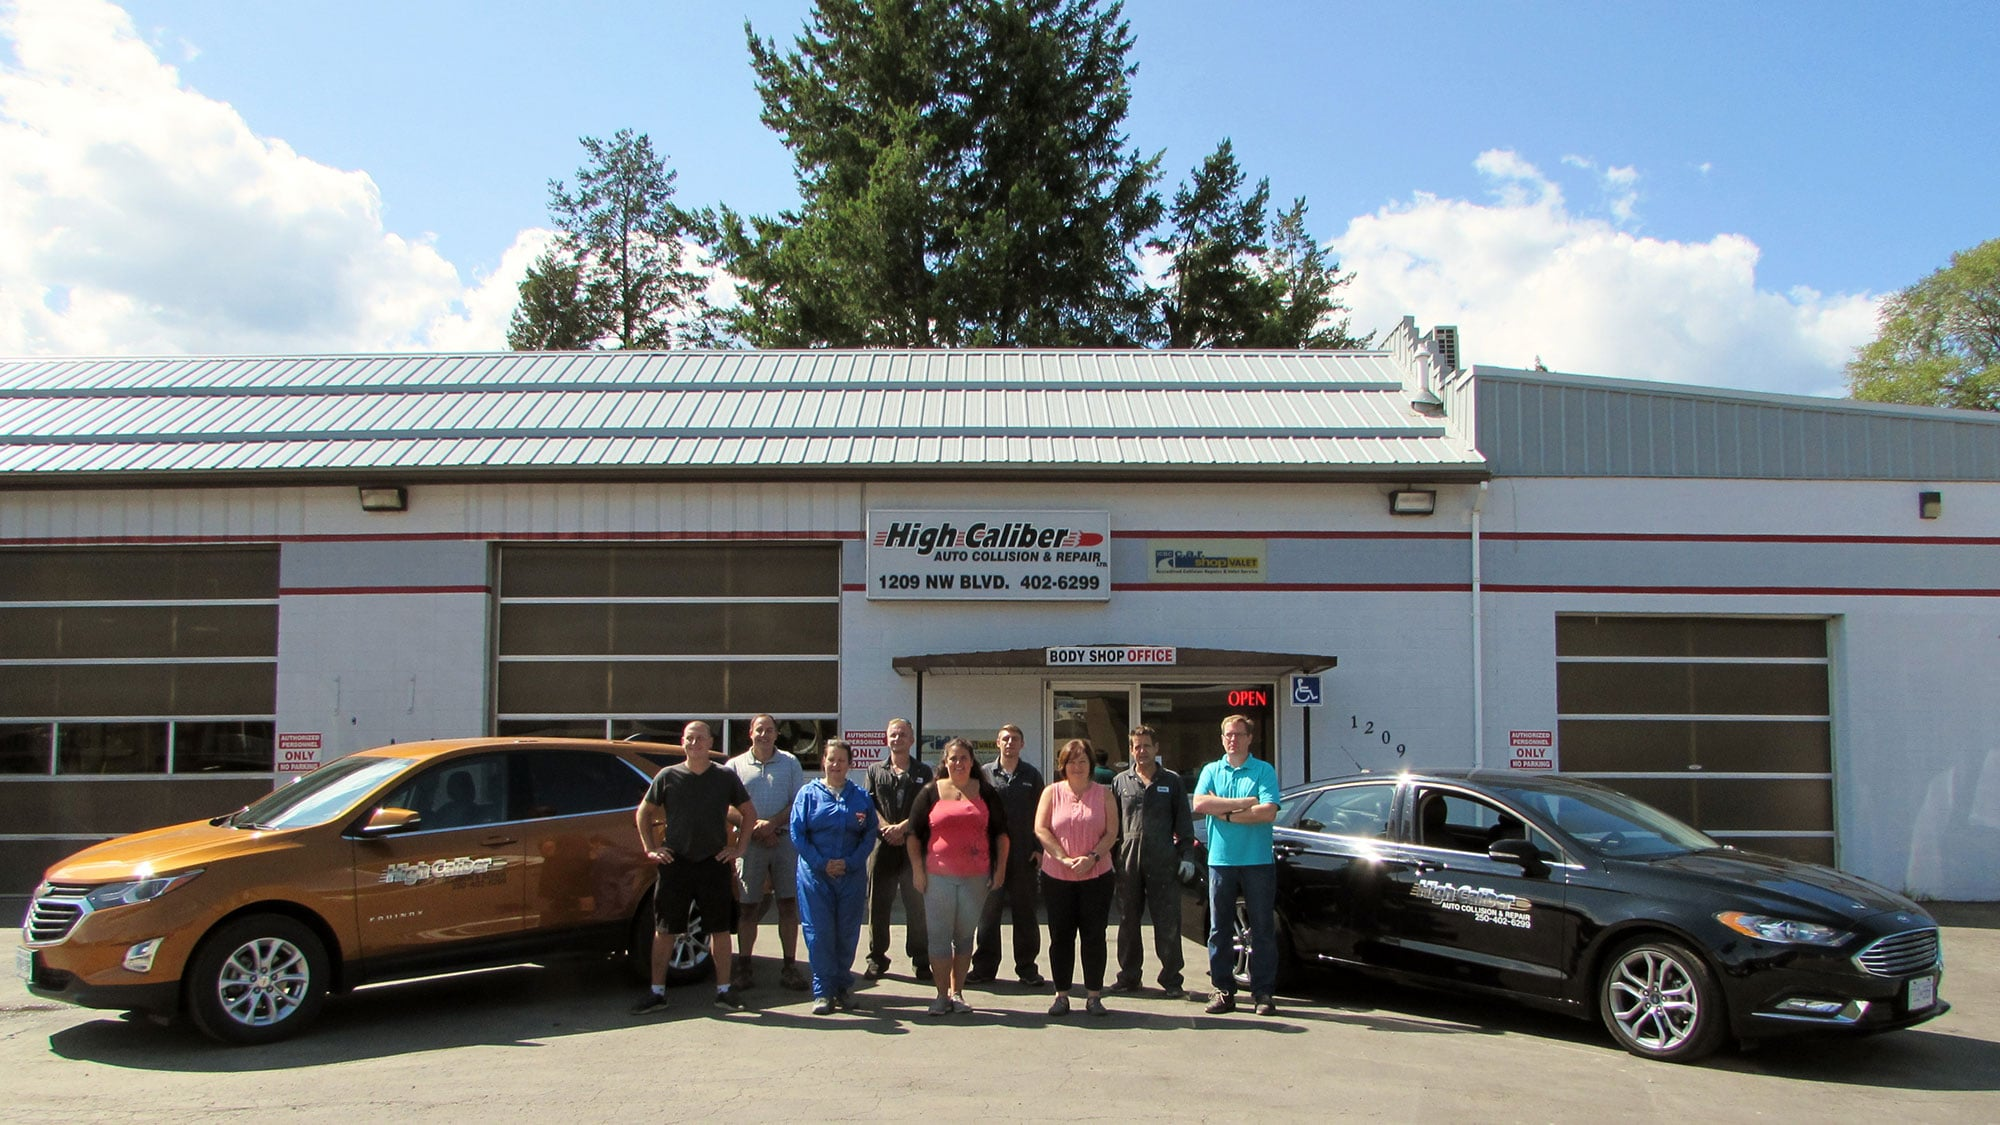 Staff photo outside High Caliber Auto Collision and Repair shop in Creston BC